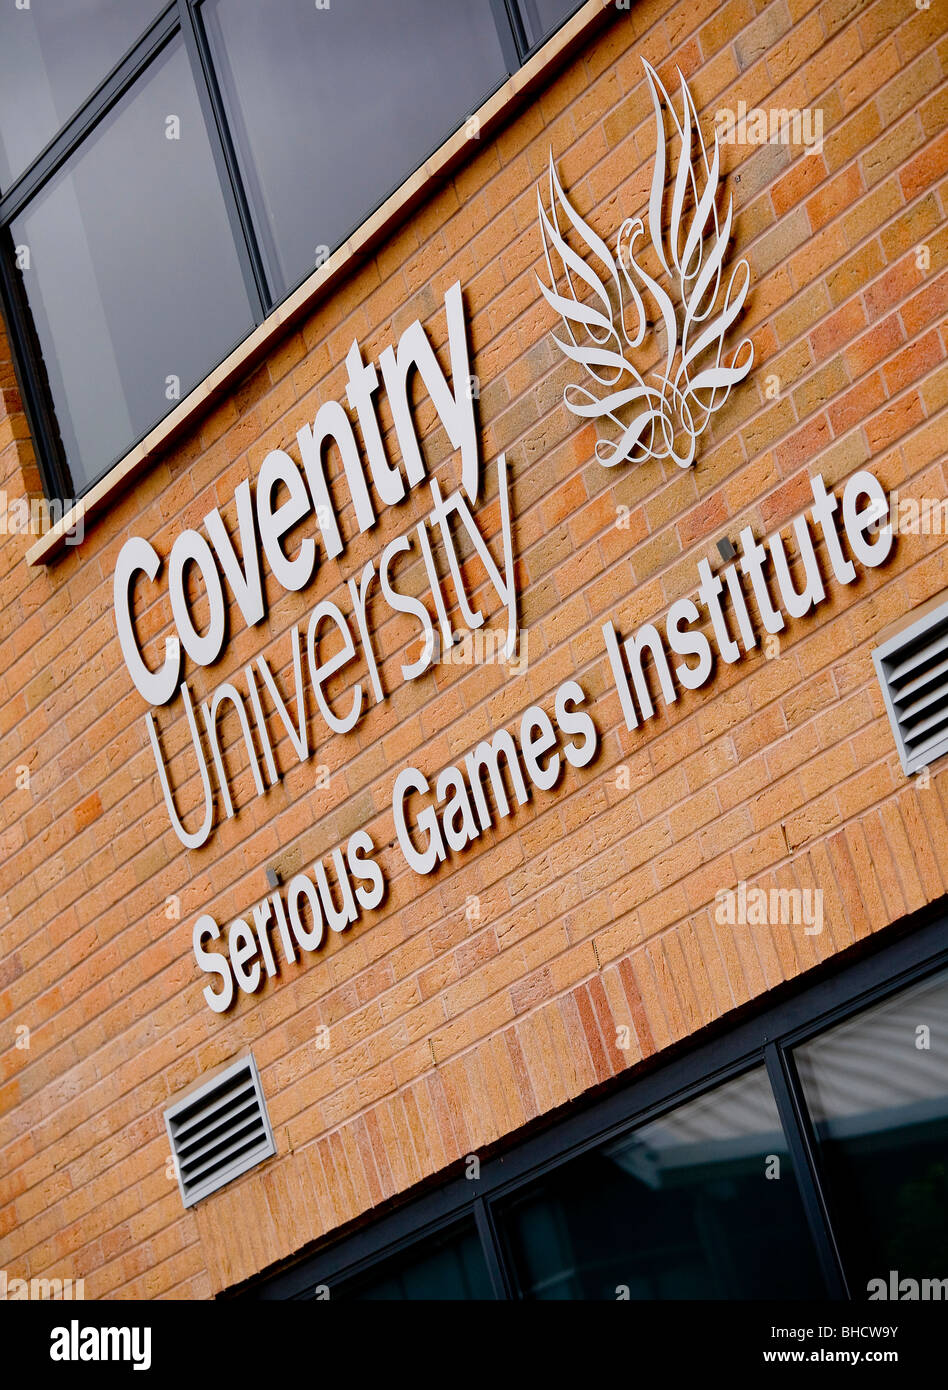 Coventry University Technology Park. Serious Games Institute. - Stock Image